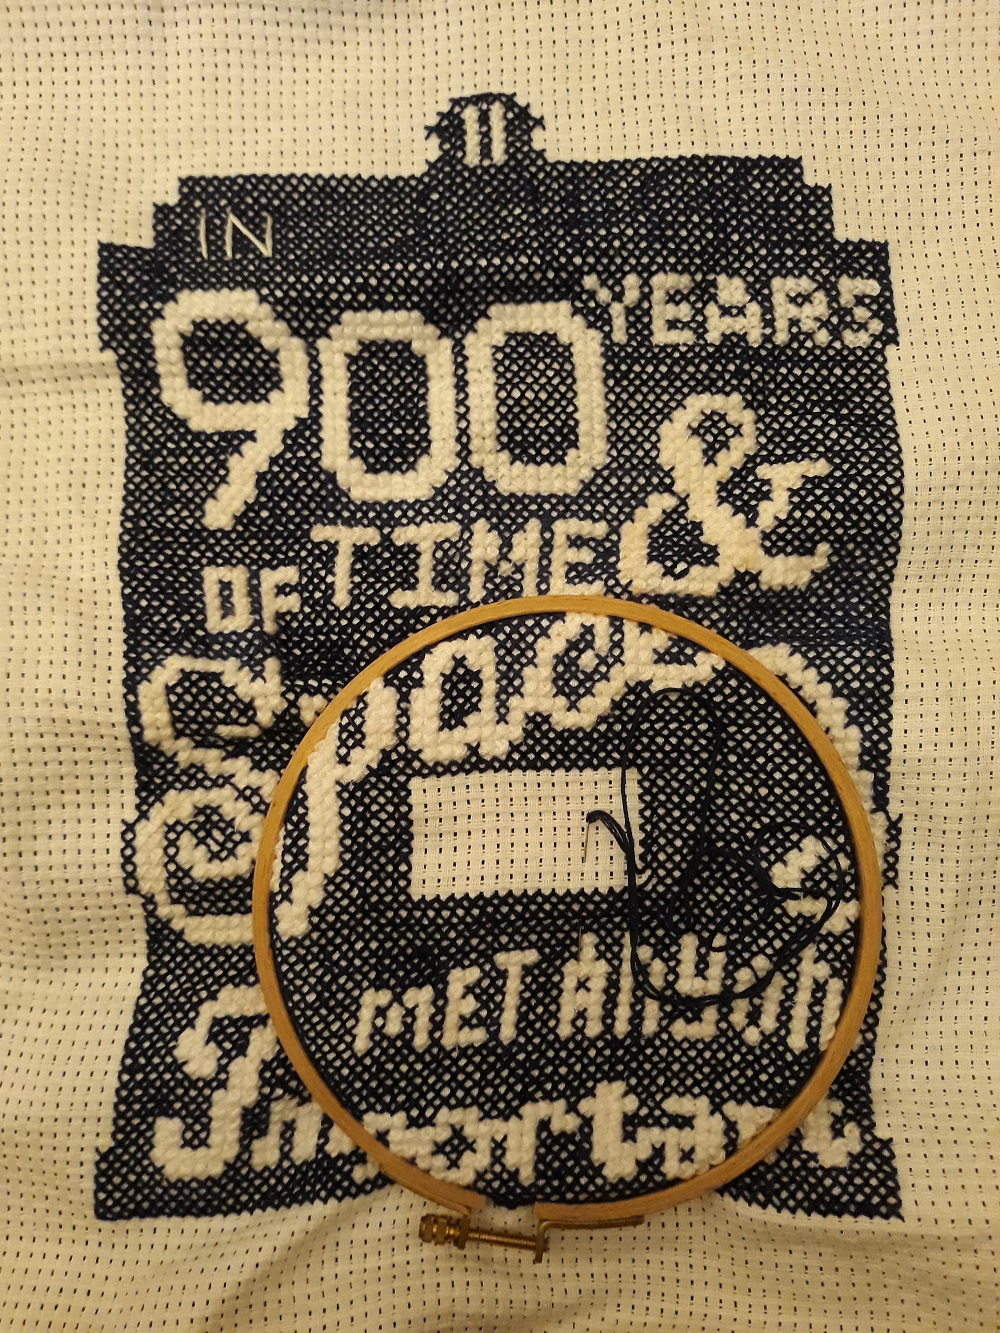 Dr Who quote - crossstitched